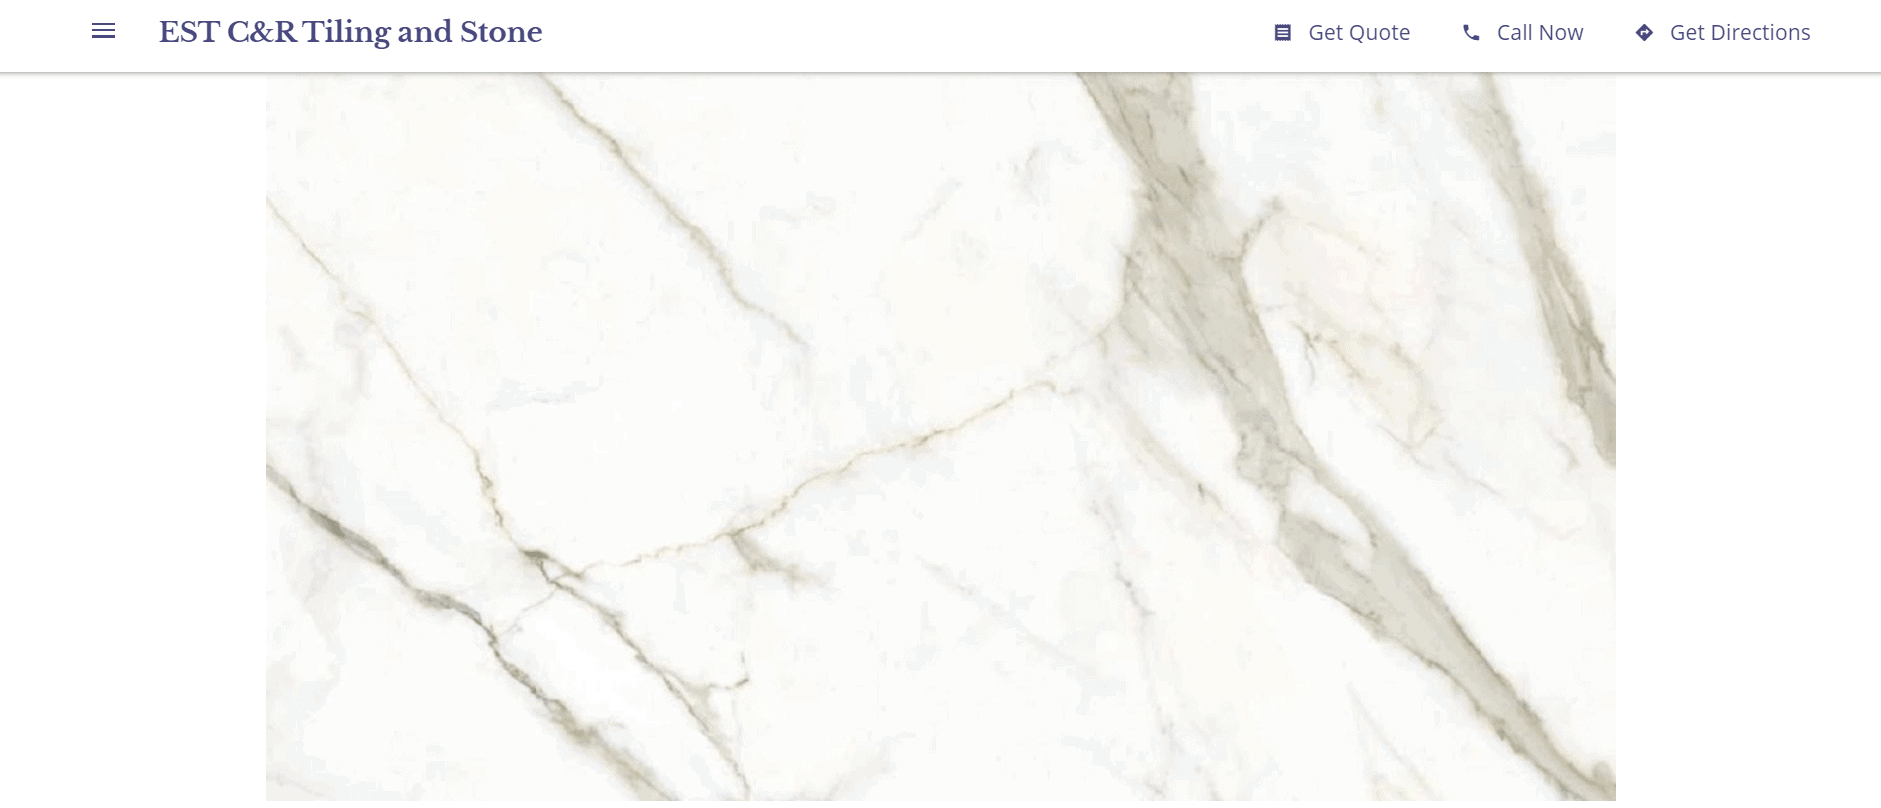 est c r tiling and stone